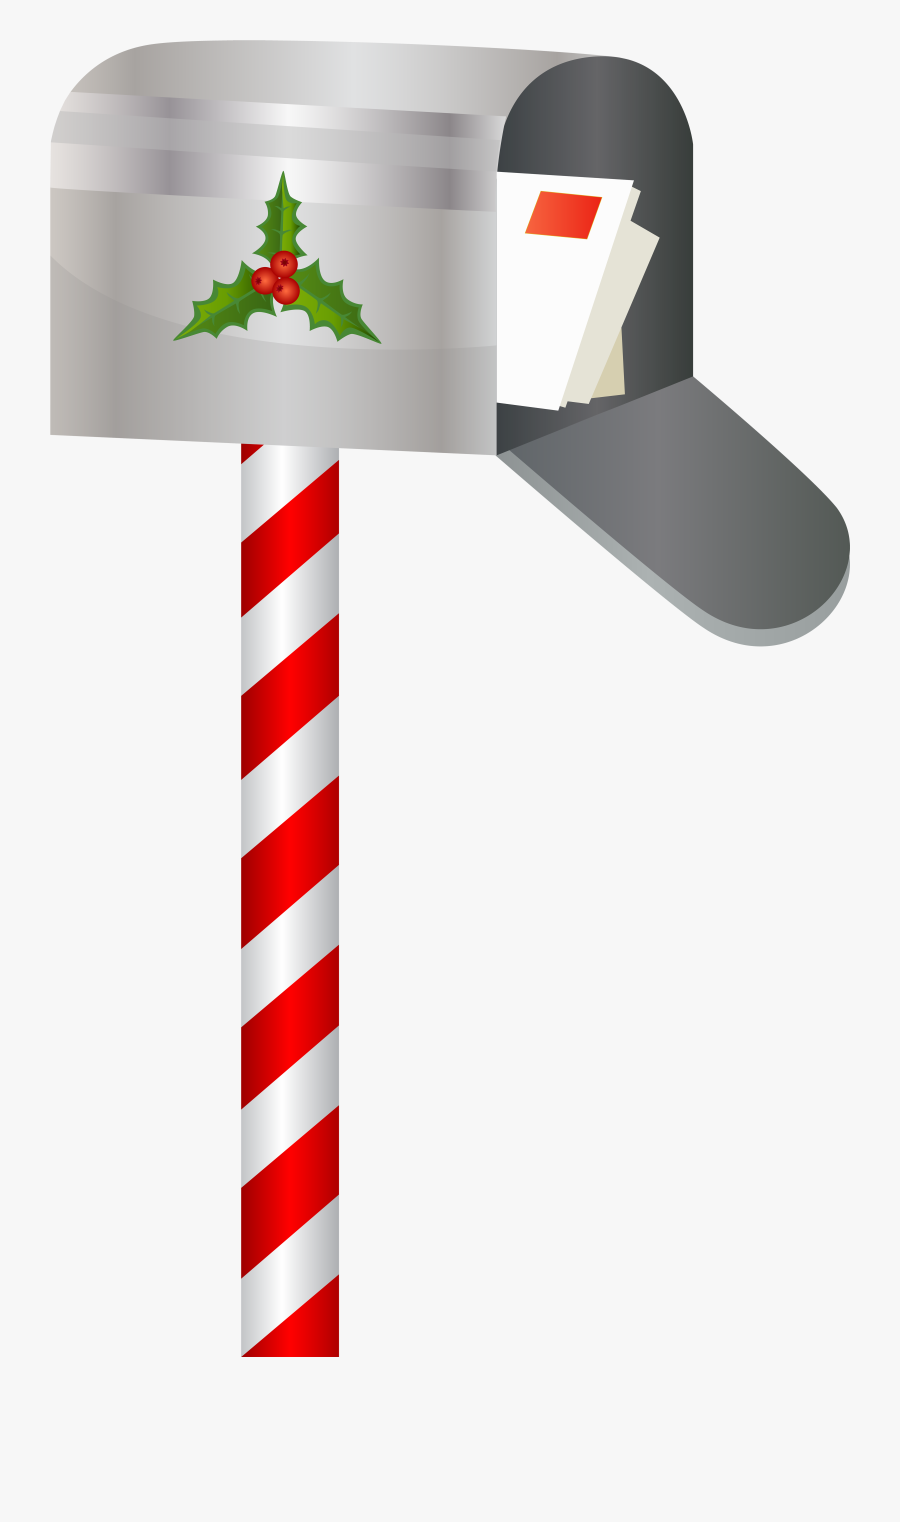 Christmas Mailbox Png Clip Art Imageu200b Gallery Yopriceville - Portable Network Graphics, Transparent Clipart